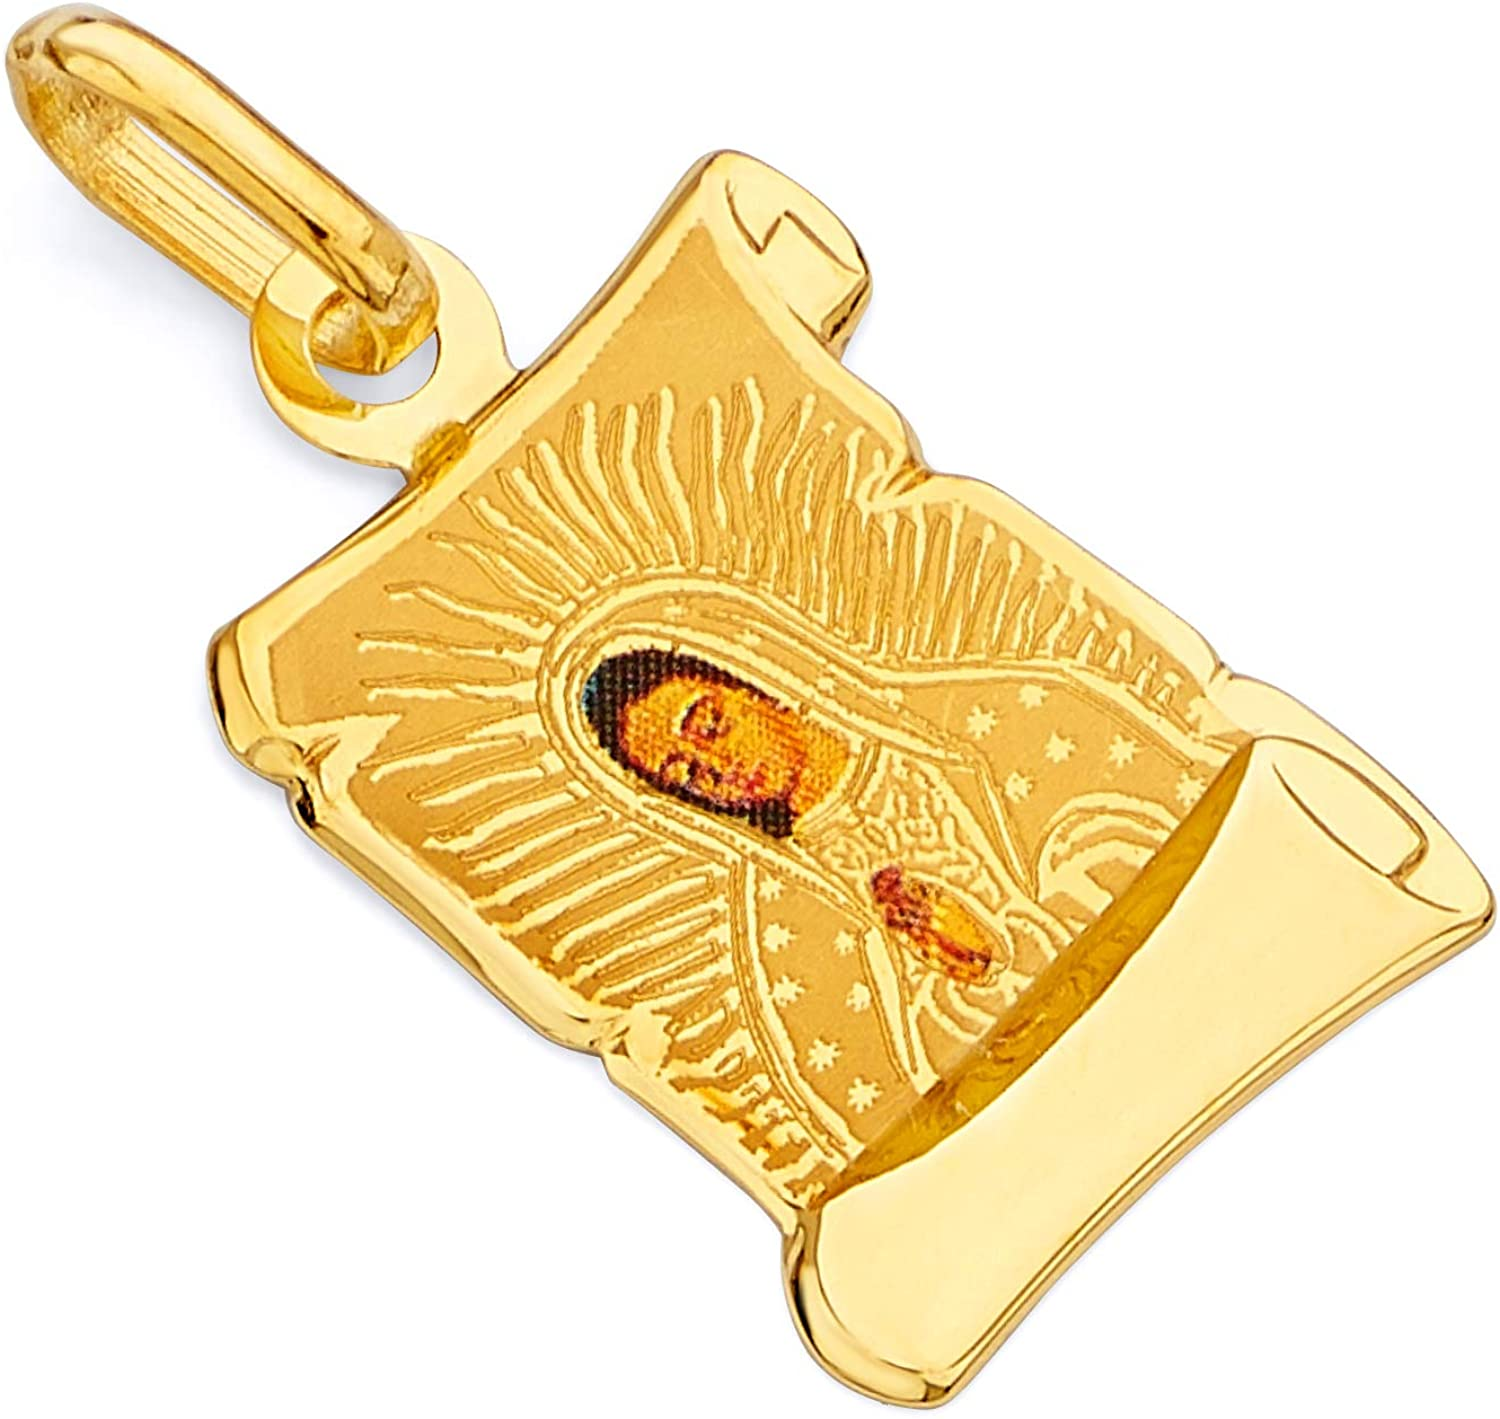 GoldenMine Fine Jewelry Collection Miami Mall 14k Religious Yellow Our Import Gold